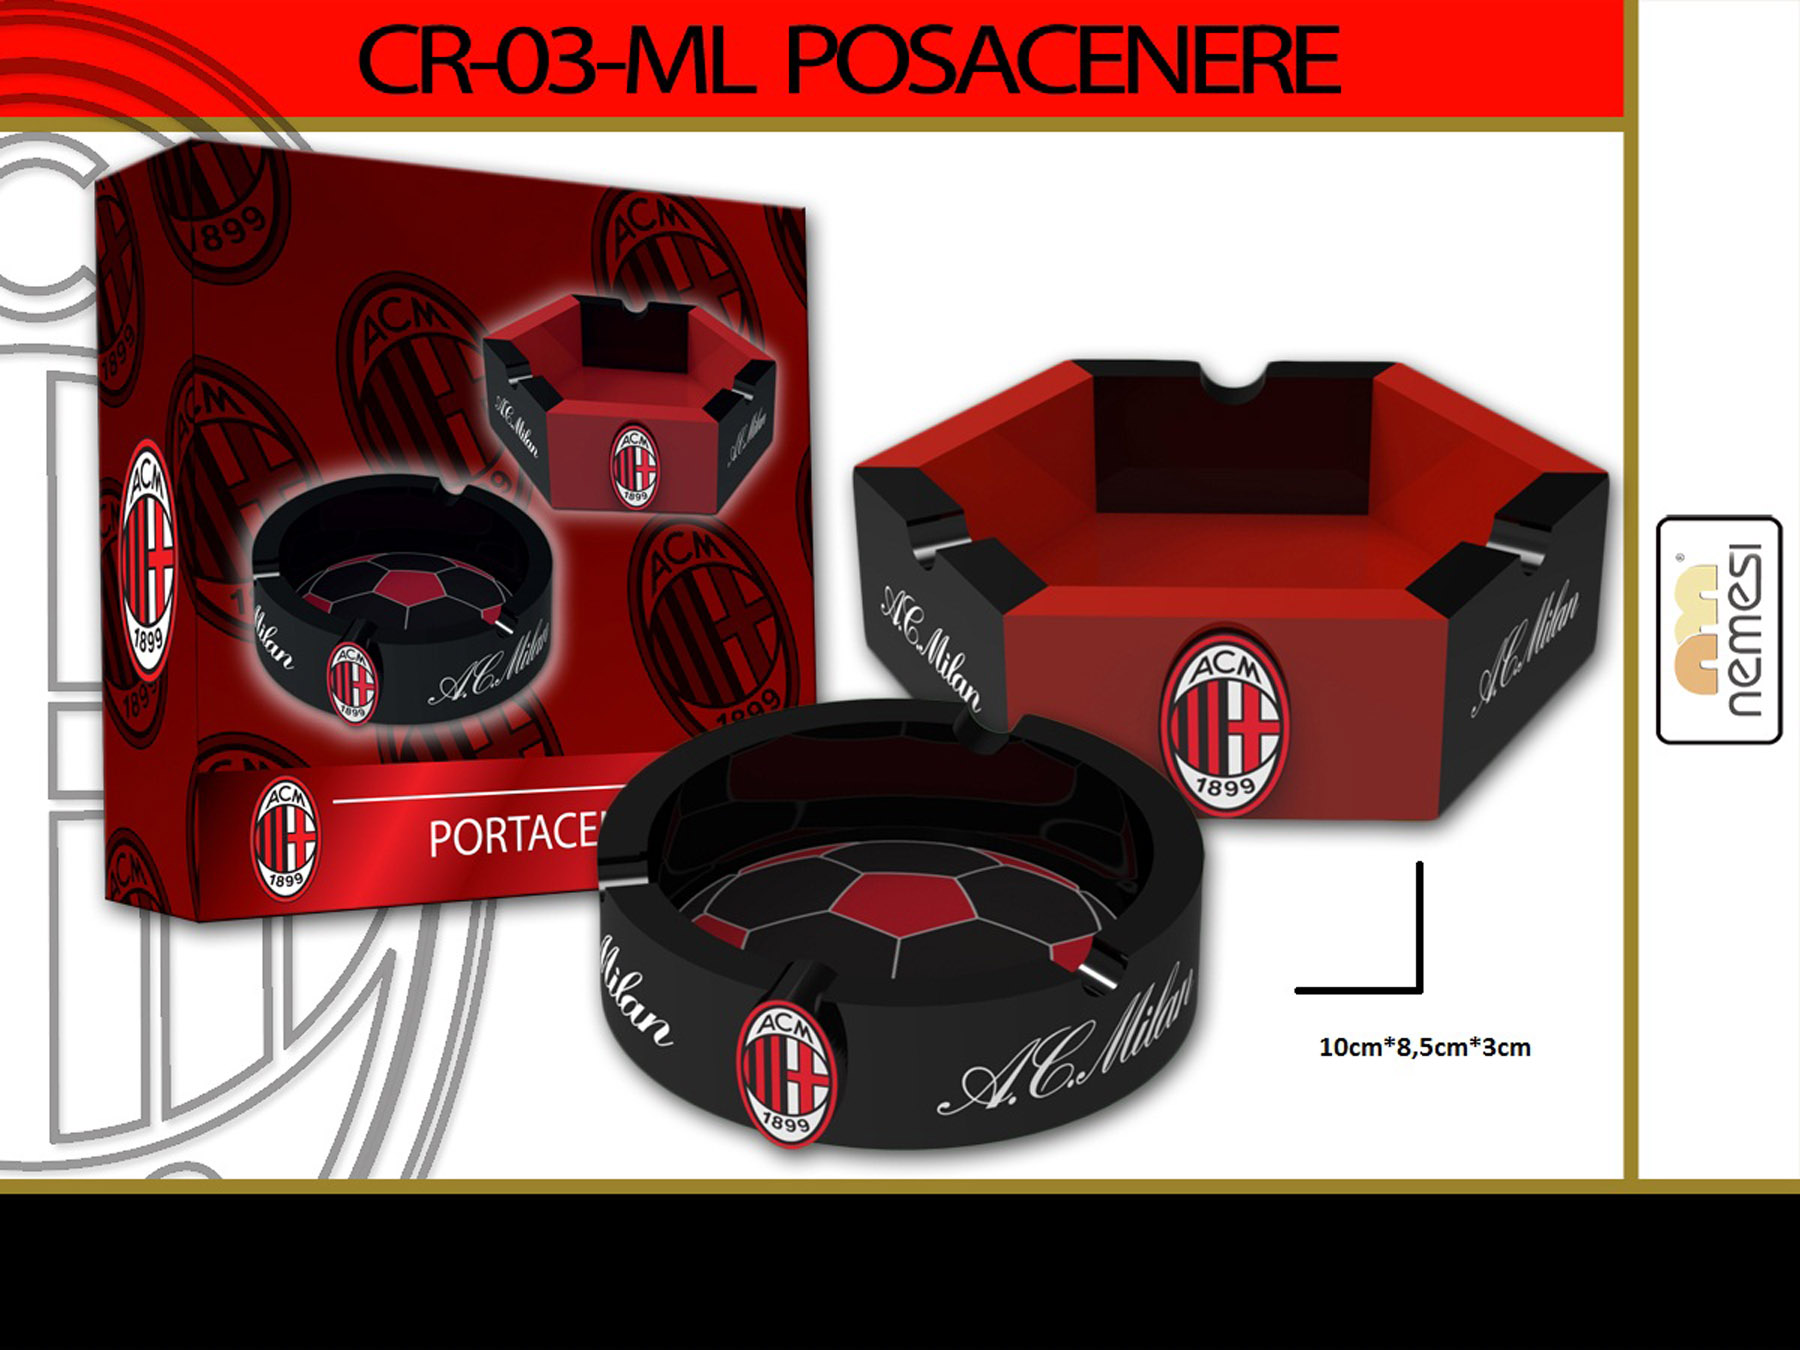 MILAN_CR03ML